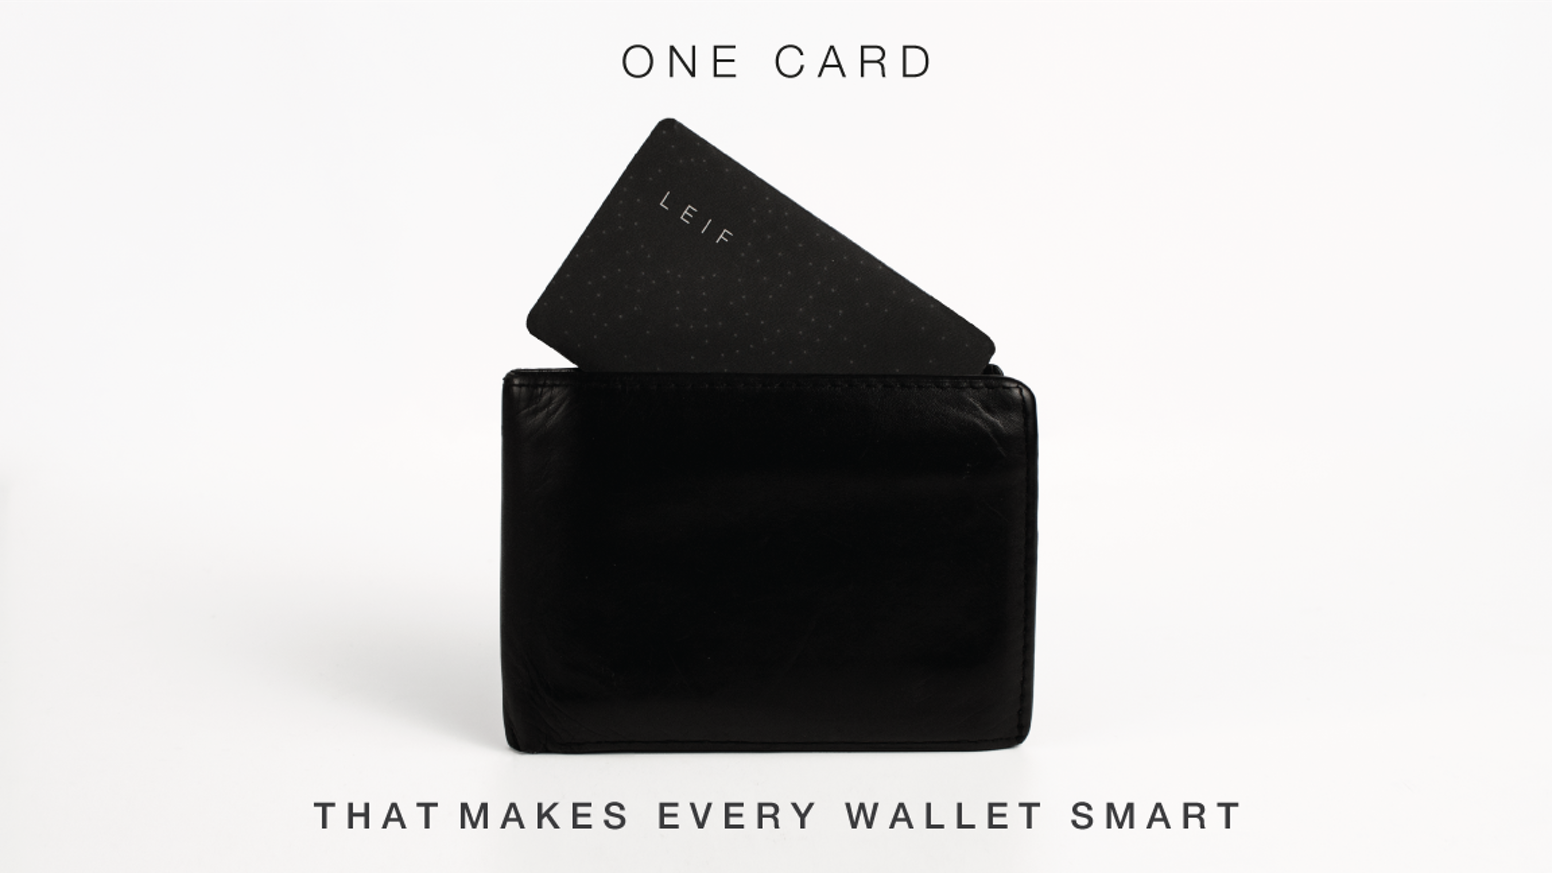 You have a wallet: LEIF makes it smart. The world's thinnest tracking device, theft preventer, and wallet finder.